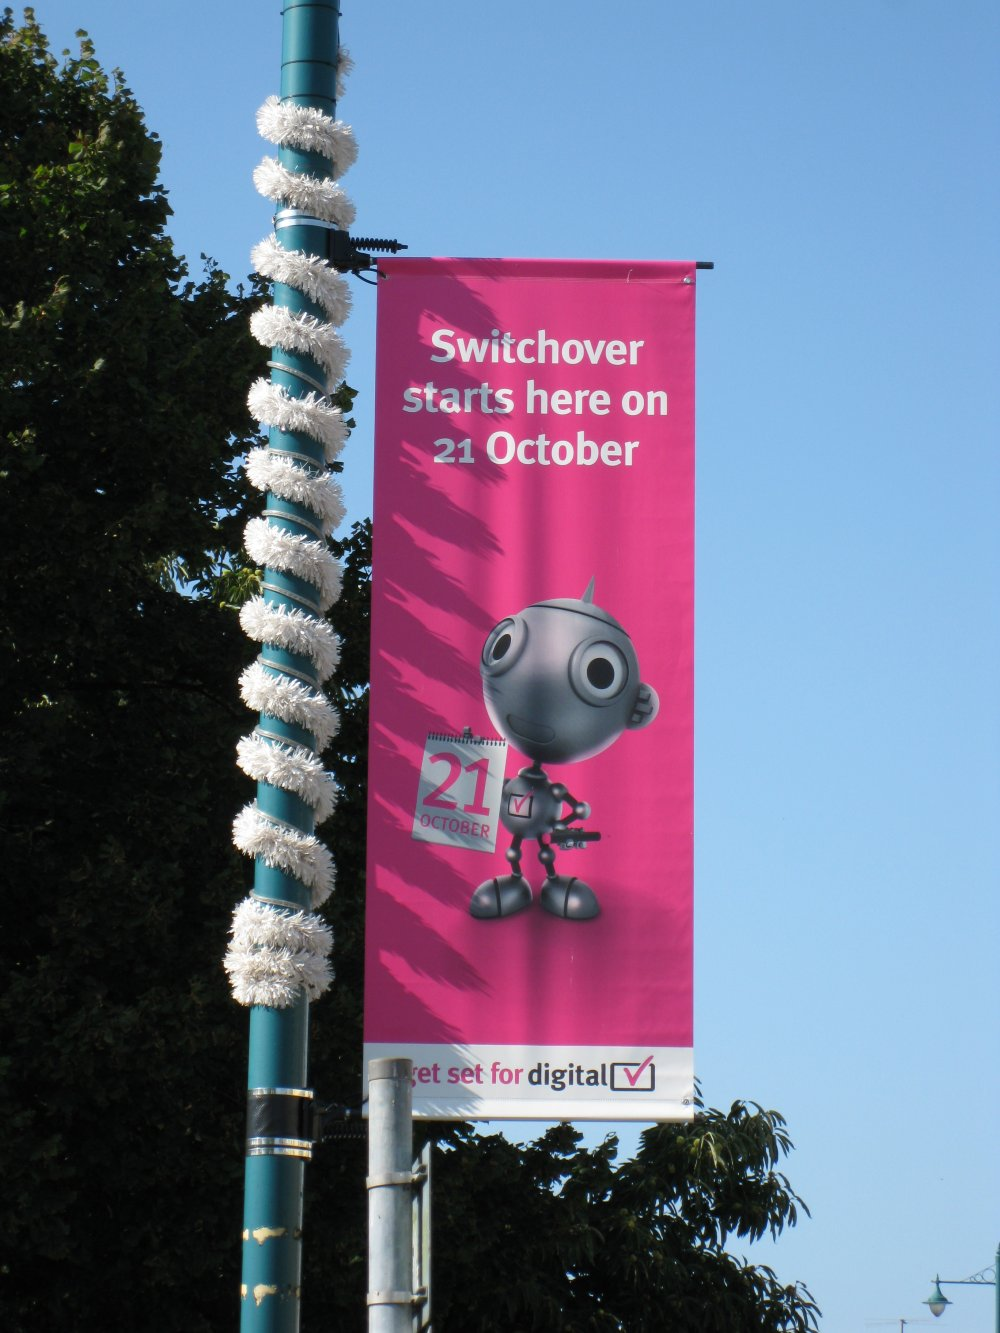 Digital switchover advertisement on a lamp post in Portmadog, Wales, September 2009